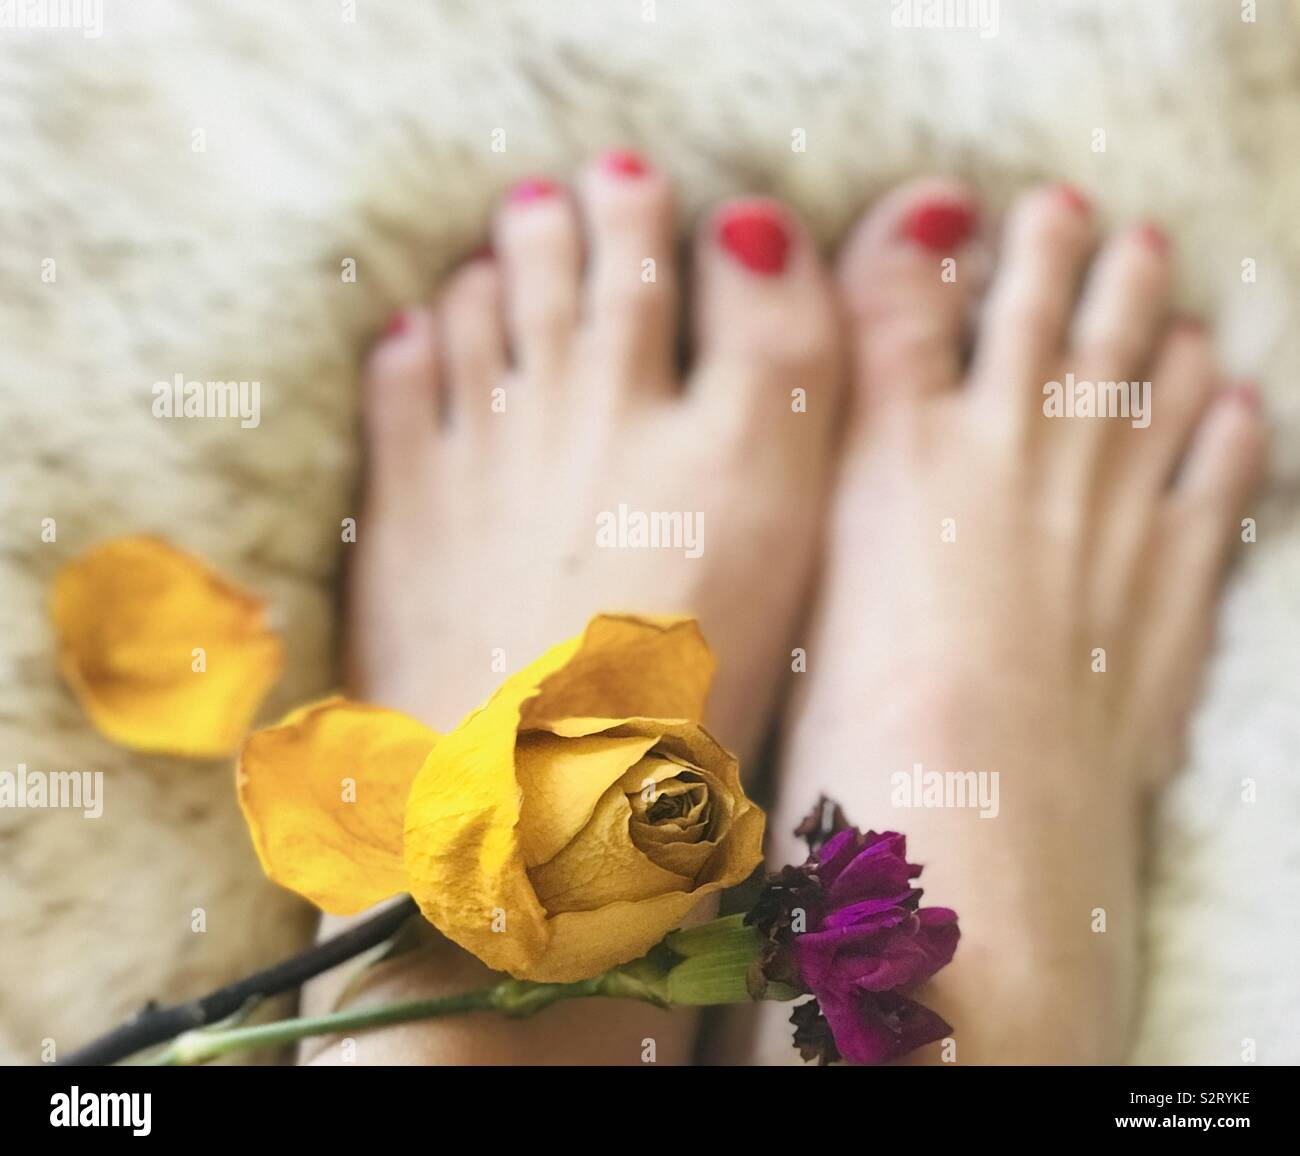 Flowers On Feet High Resolution Stock Photography And Images Alamy